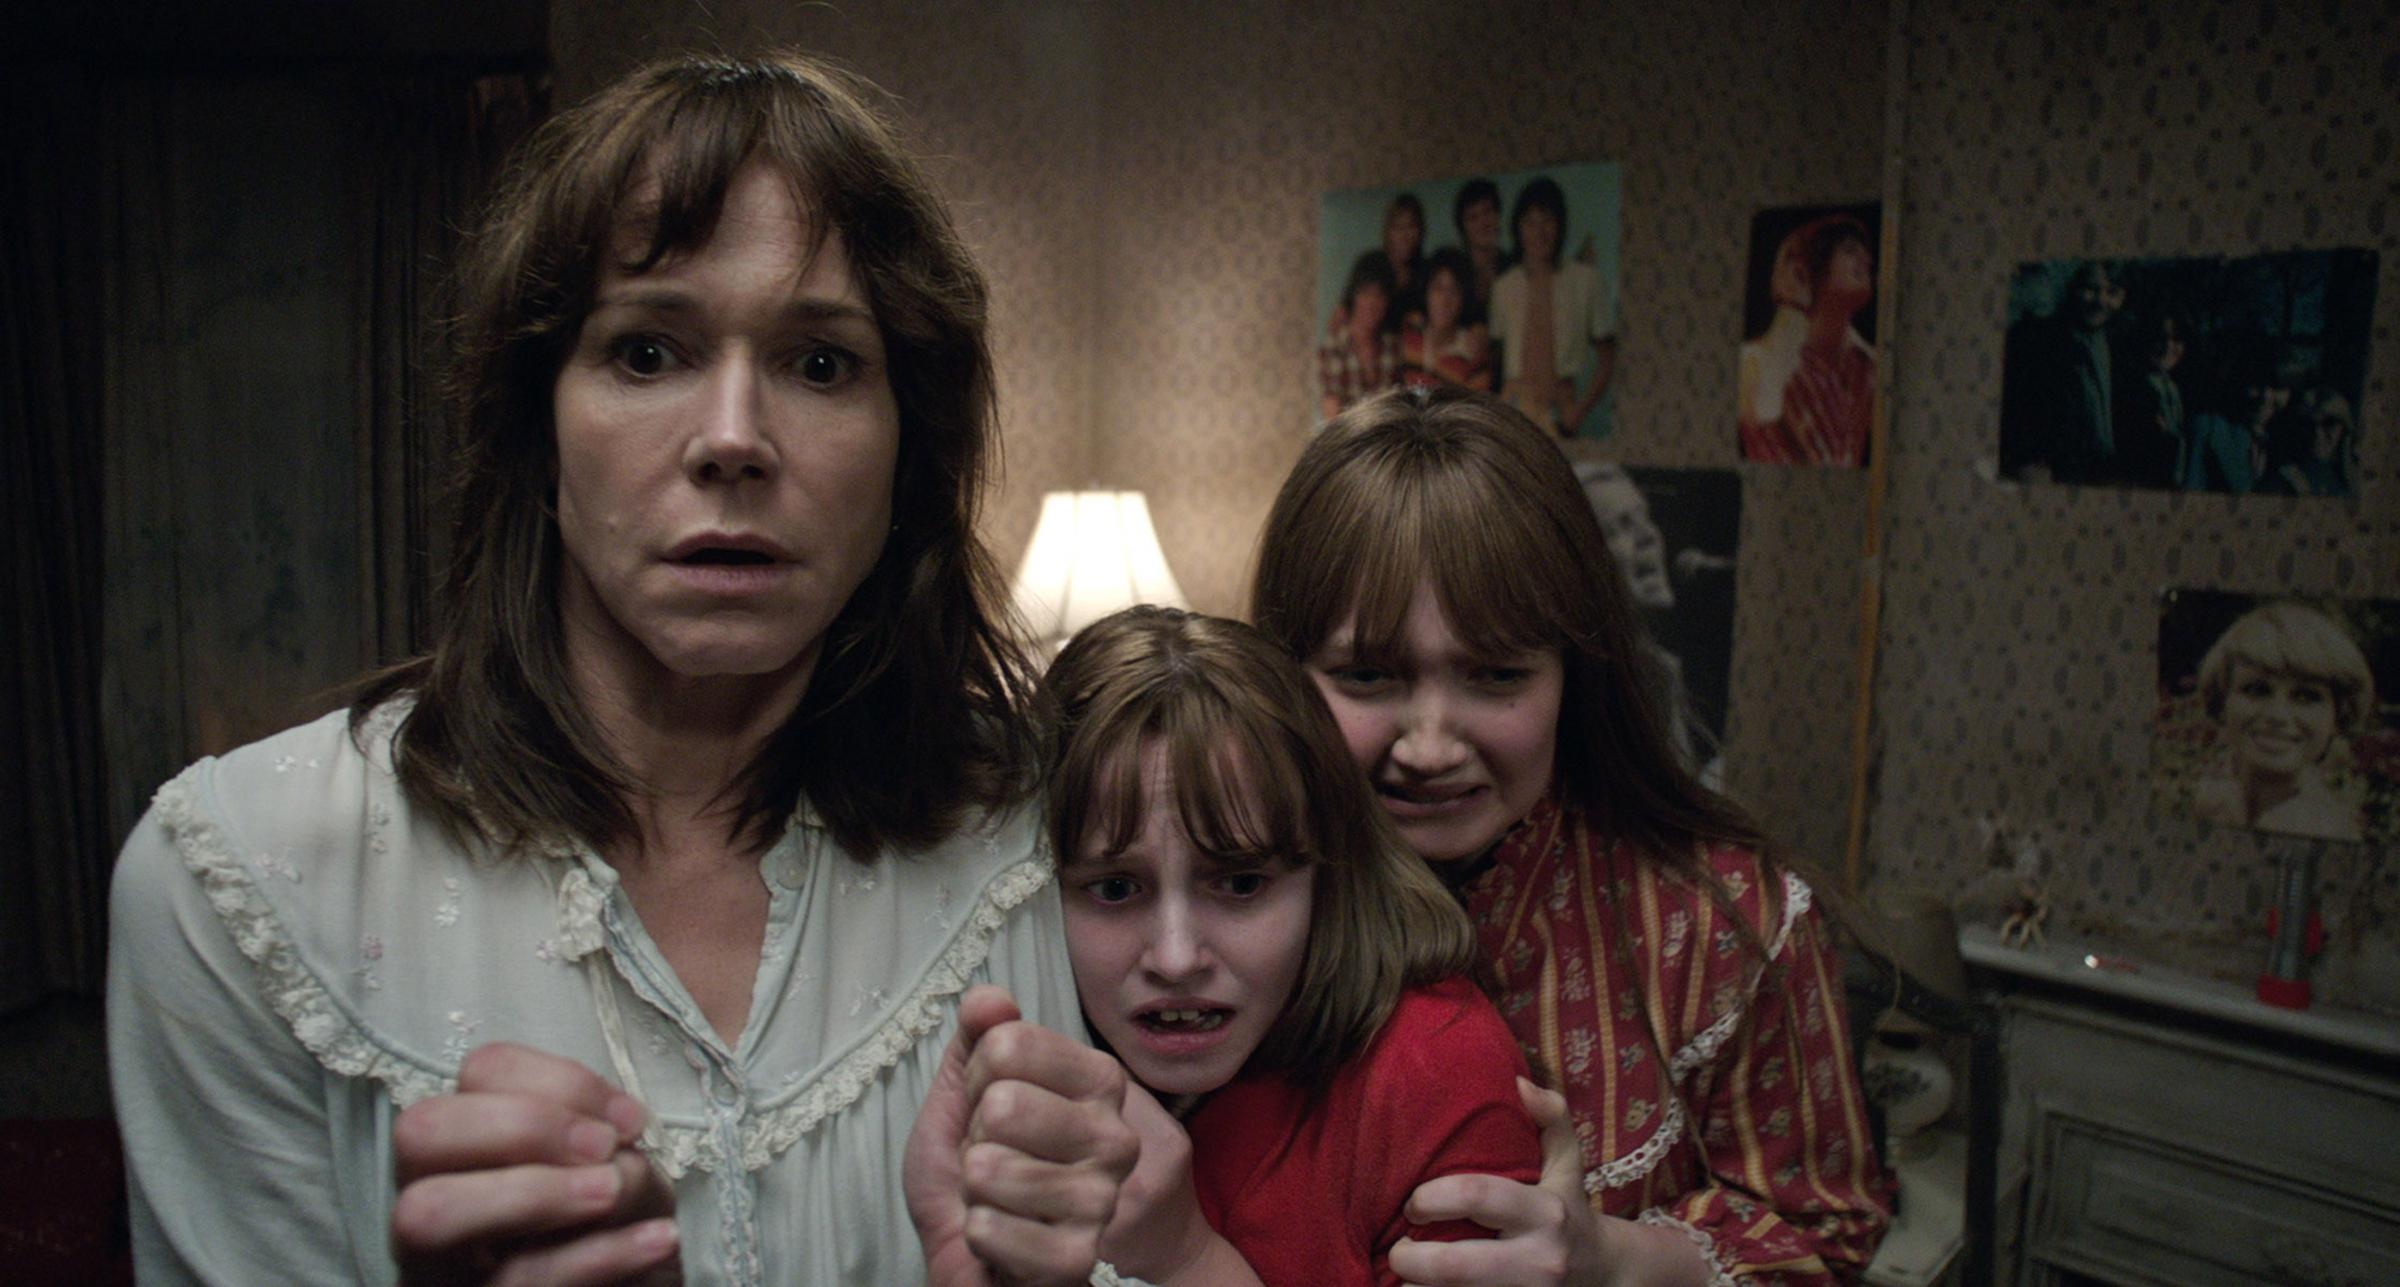 IT'S BEHIND YOU: Family fright time in The Conjuring 2.